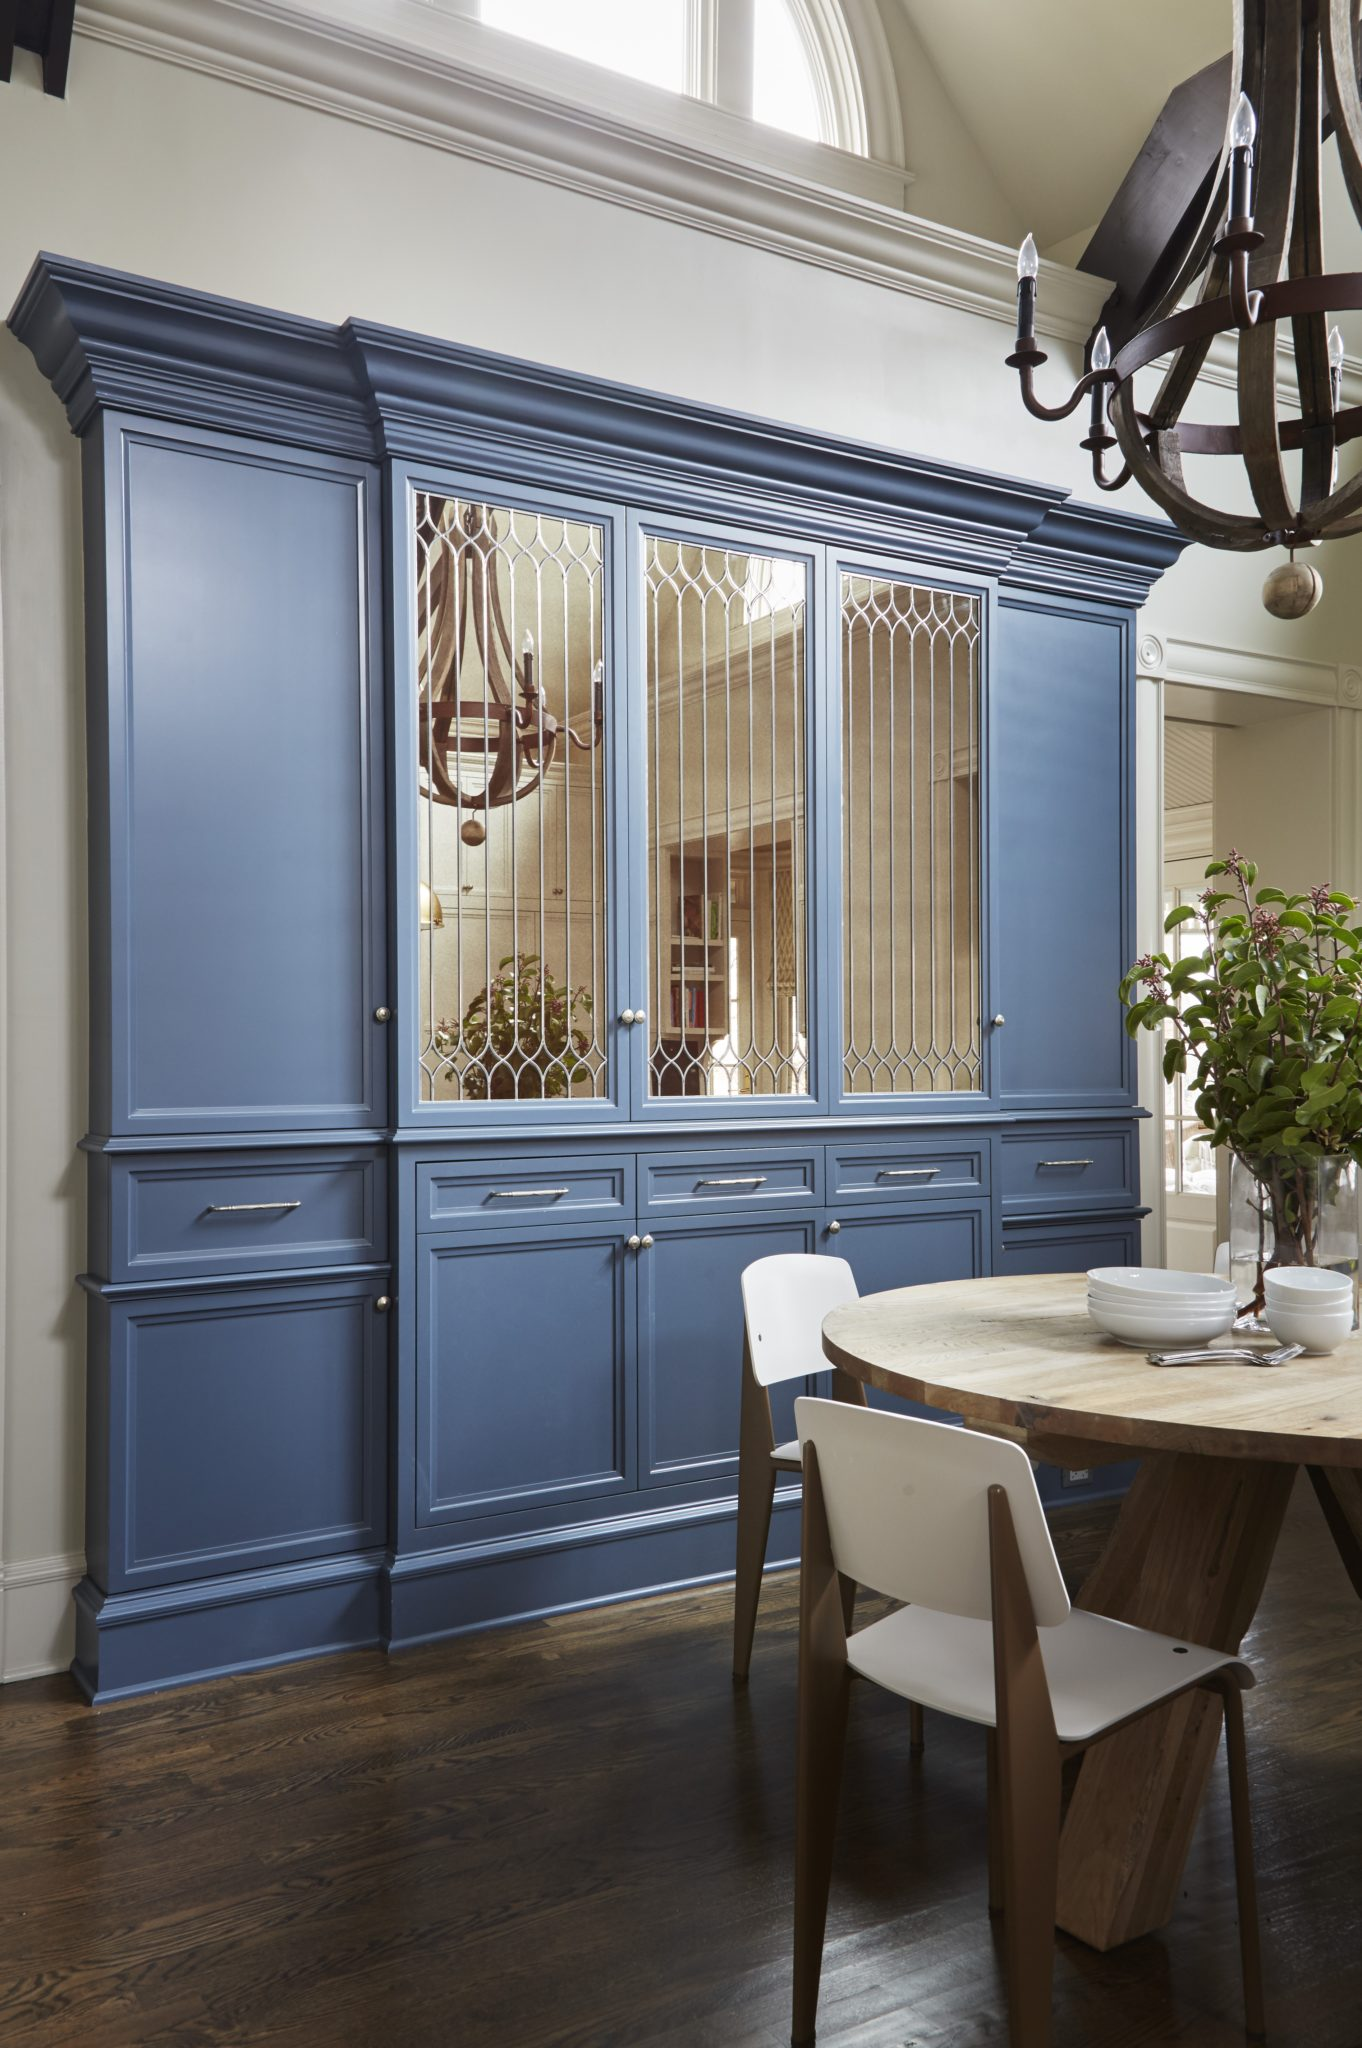 Kitchen with barrel wood chandelier and blue cabinets by 2to5 Design